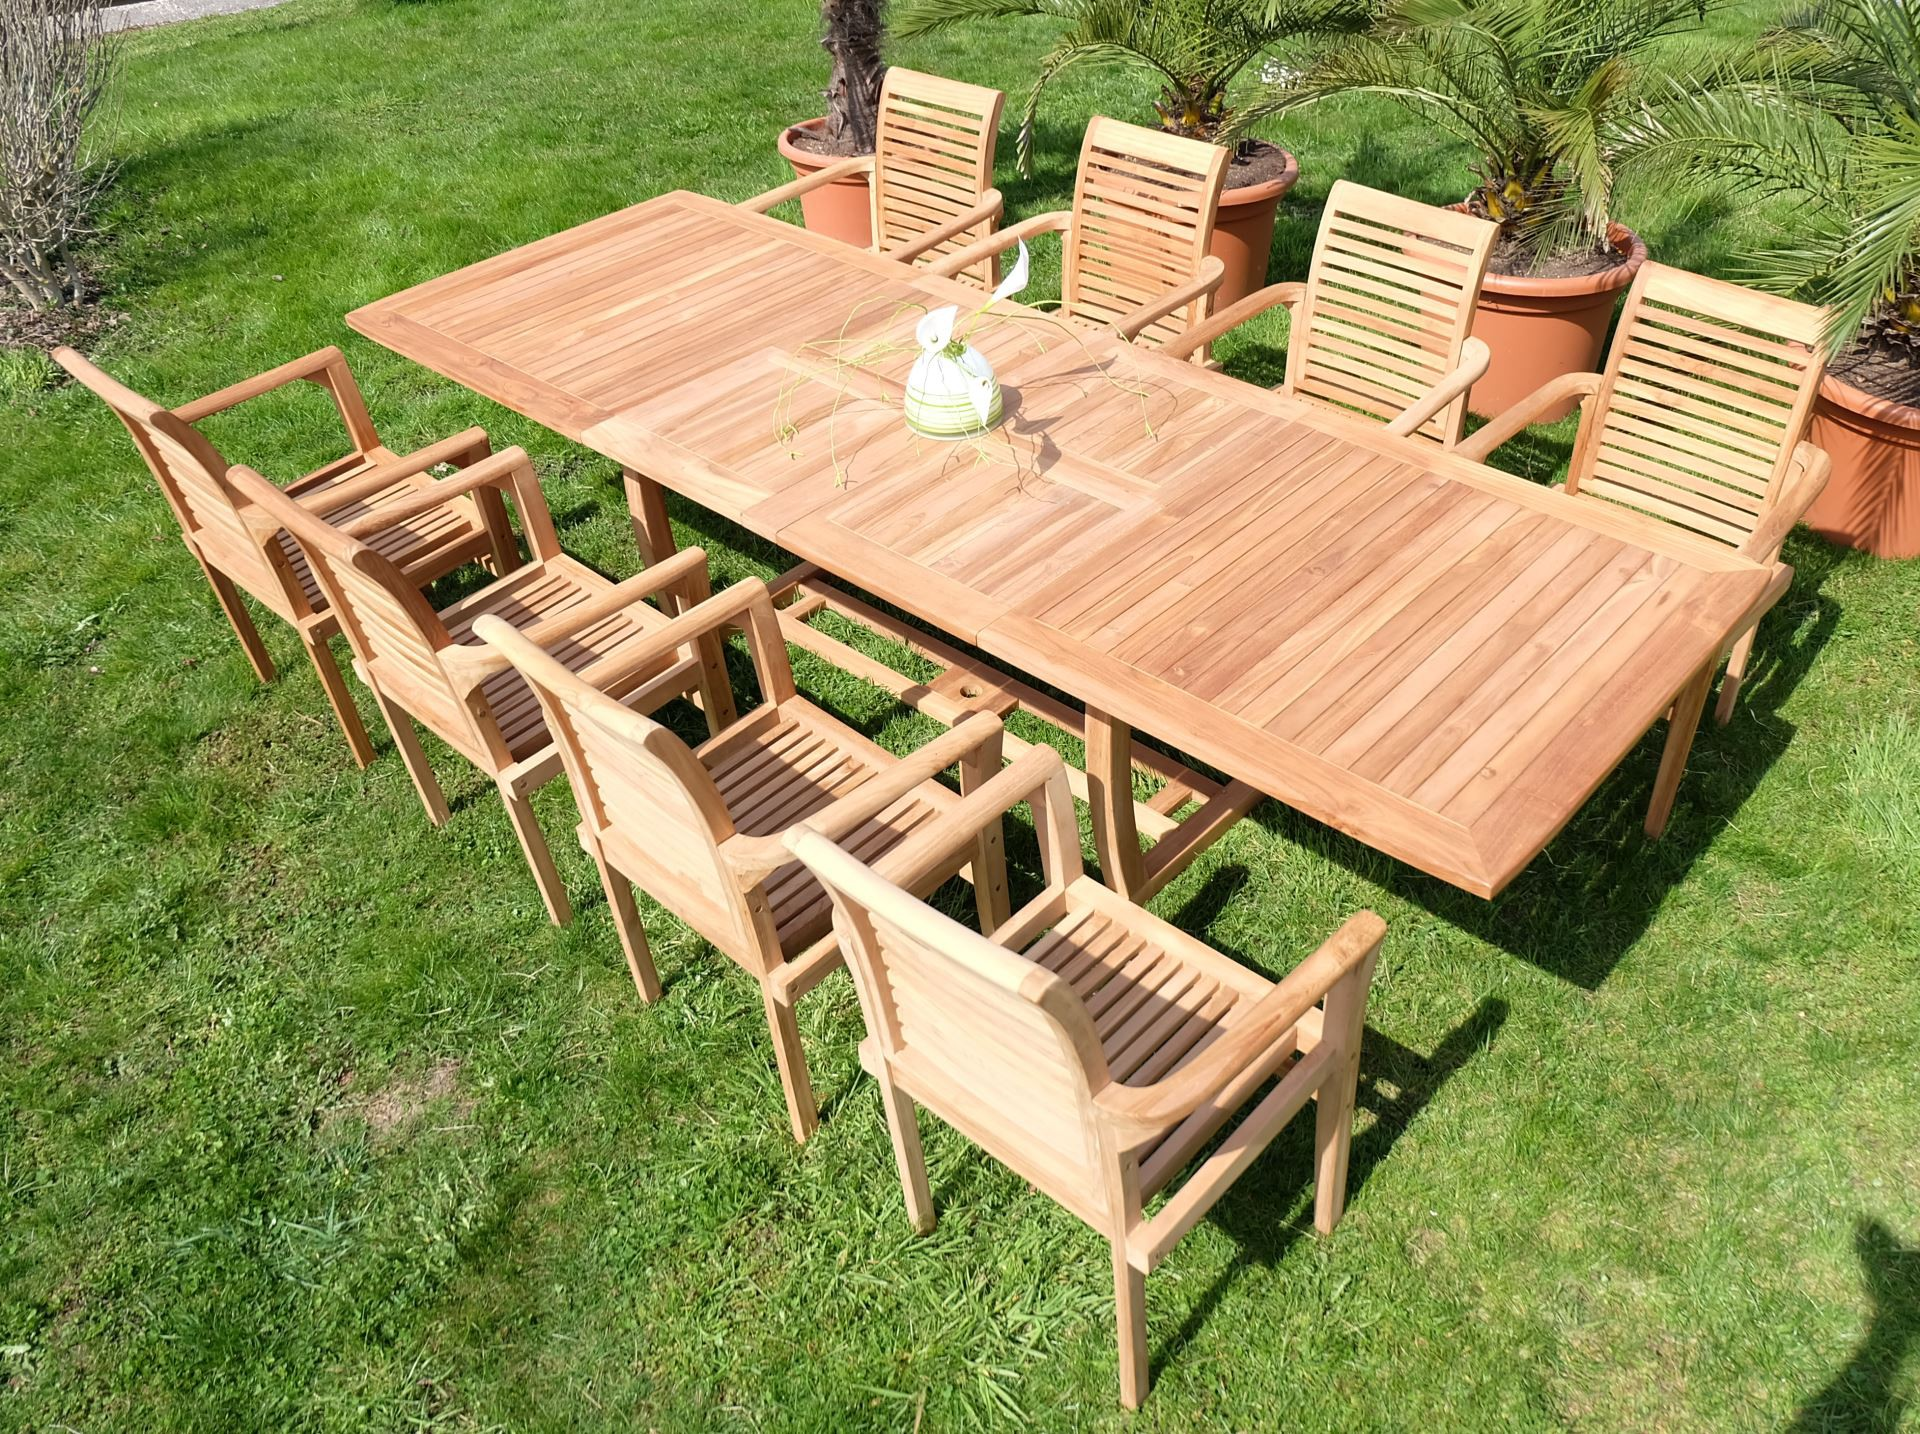 echt teak gartengarnitur gartenset gartenm bel xxxl ausziehtisch 8 st hle alpen ebay. Black Bedroom Furniture Sets. Home Design Ideas